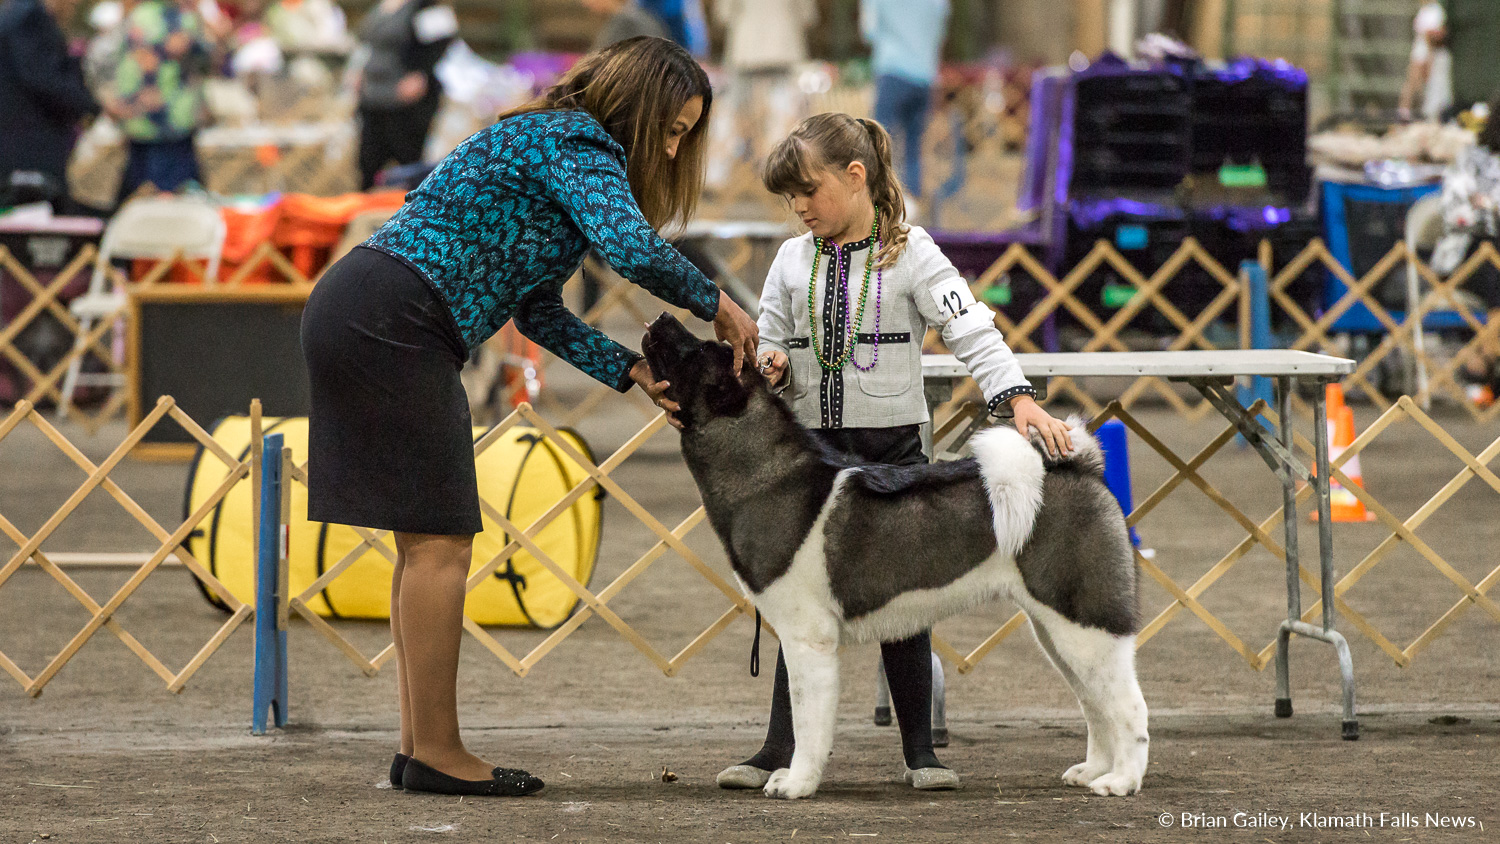 A young showman presents during the Junior Showmanship Competition held Saturday at the Klamath Dog Show. May 12, 2018 (Brian Gailey)